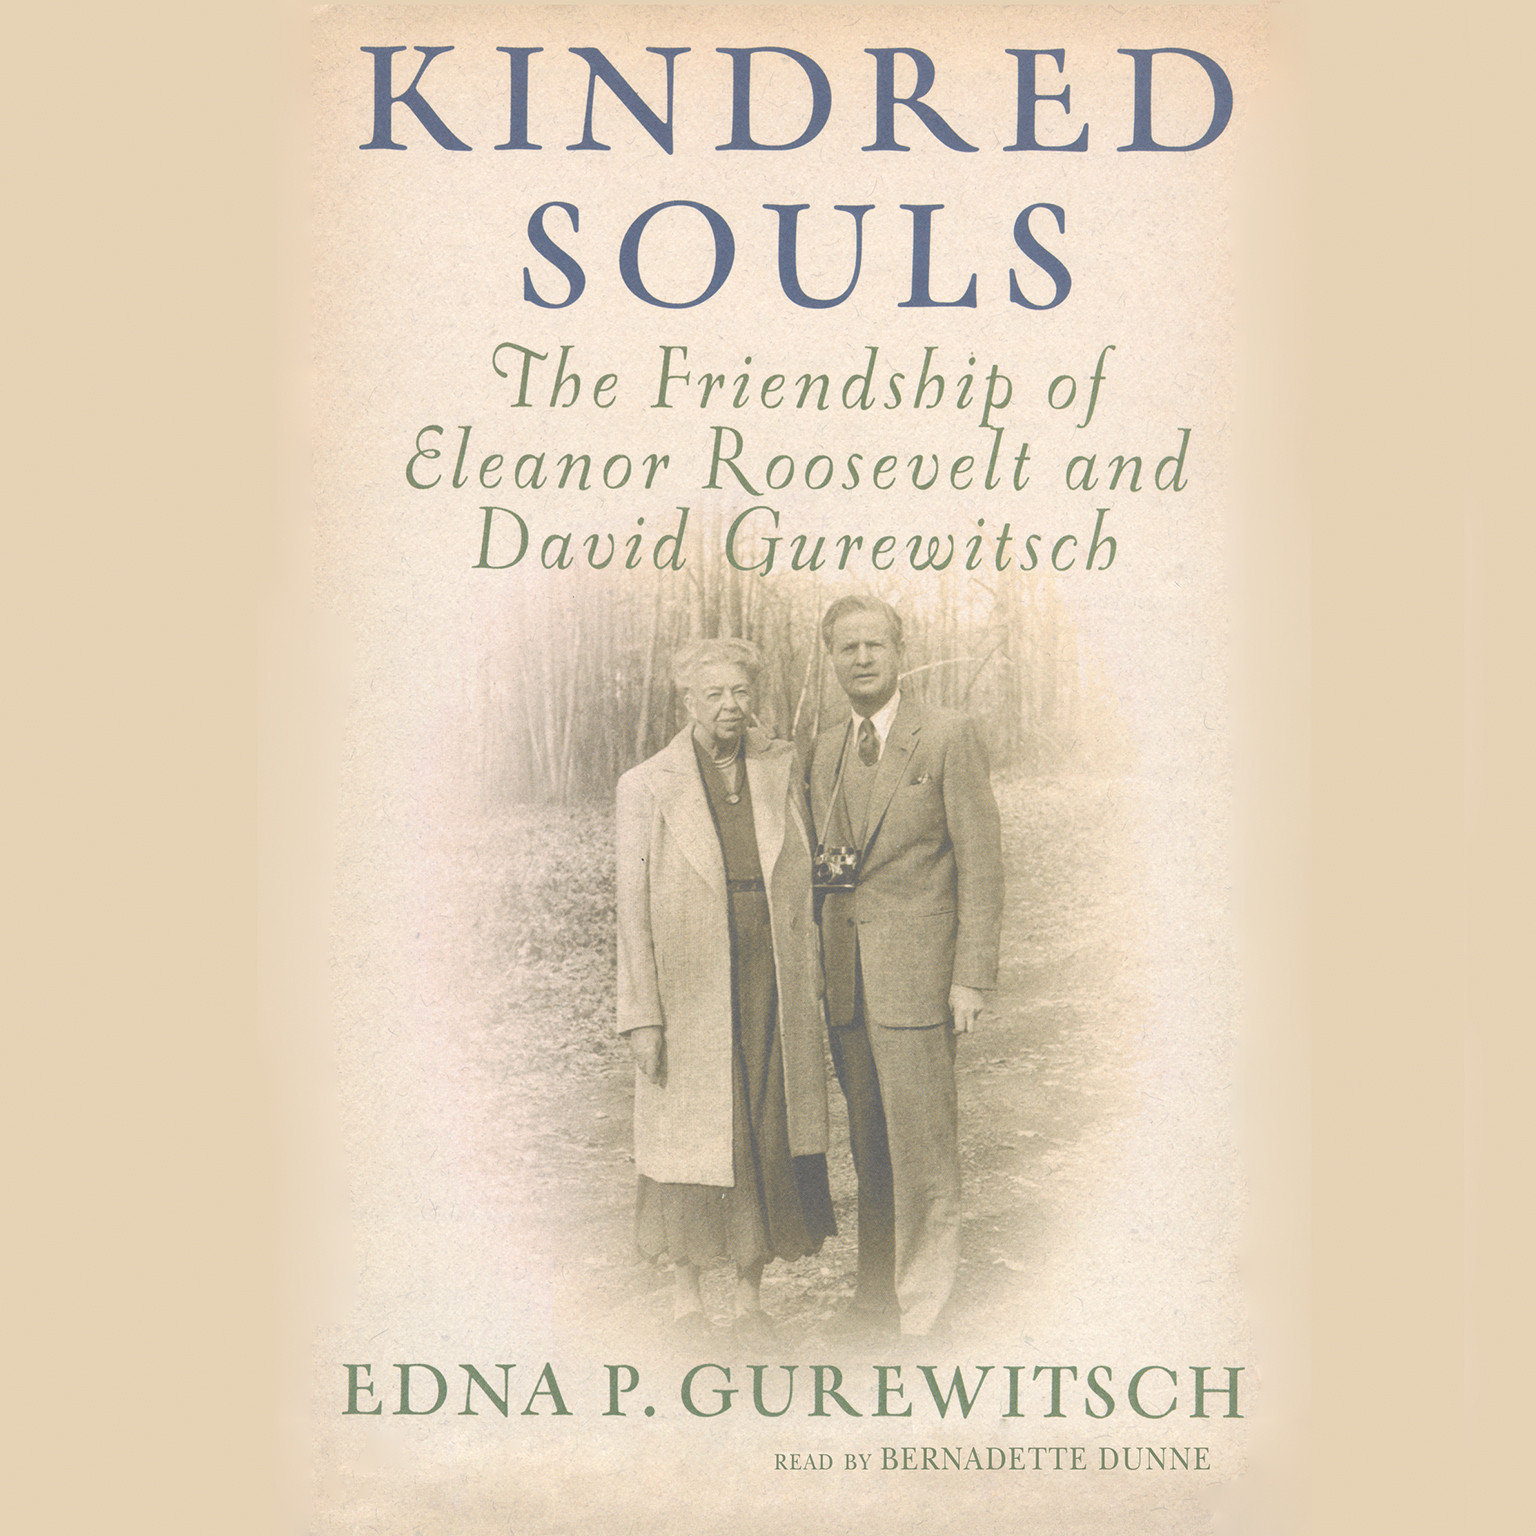 Printable Kindred Souls: The Friendship of Eleanor Roosevelt and David Gurewitsch Audiobook Cover Art